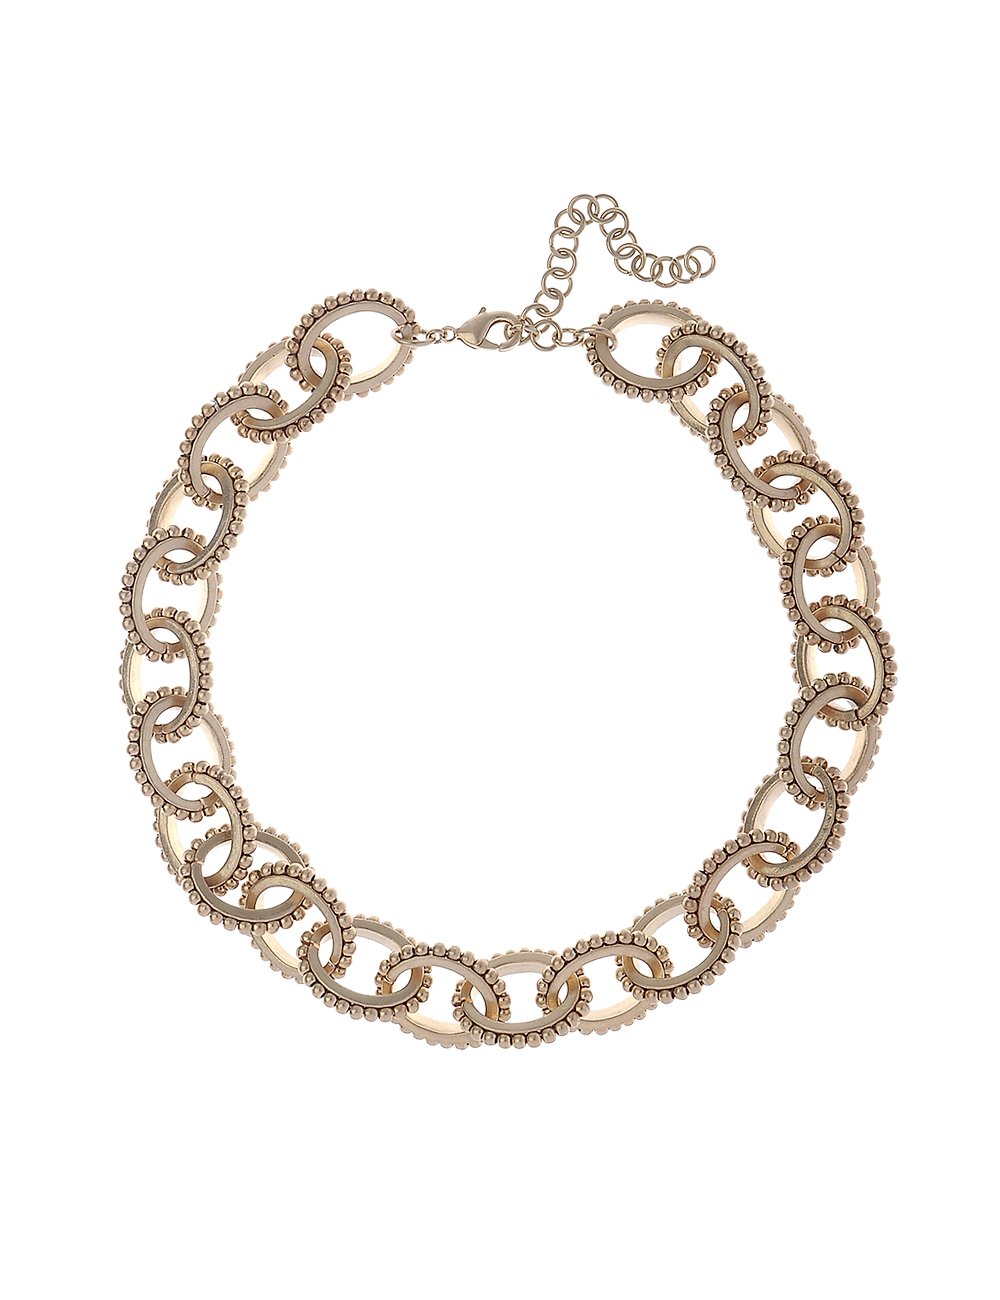 Worn Gold Link Chain Necklace